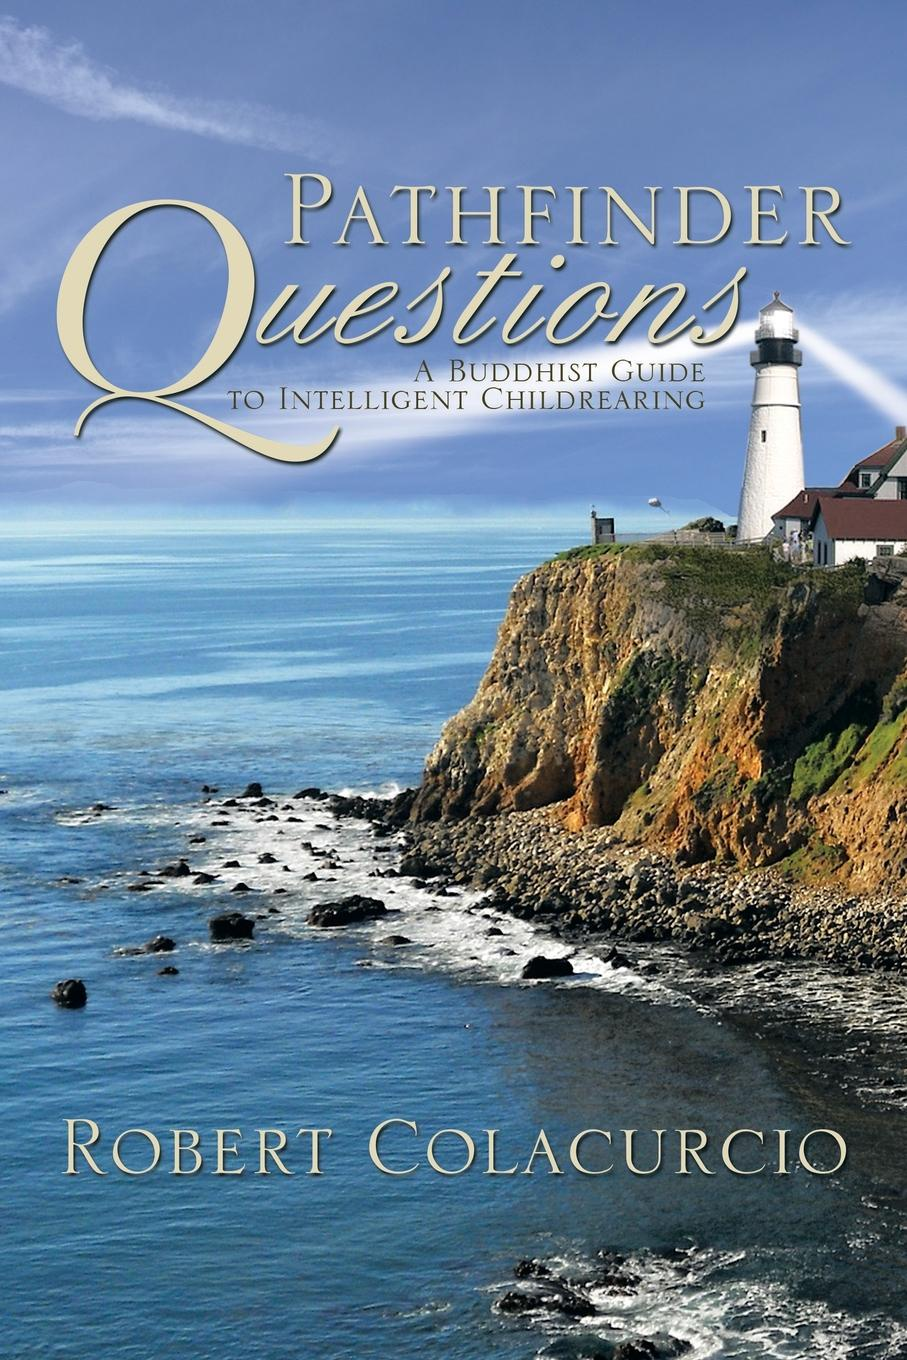 Robert Colacurcio Pathfinder Questions. A Buddhist Guide to Intelligent Childrearing